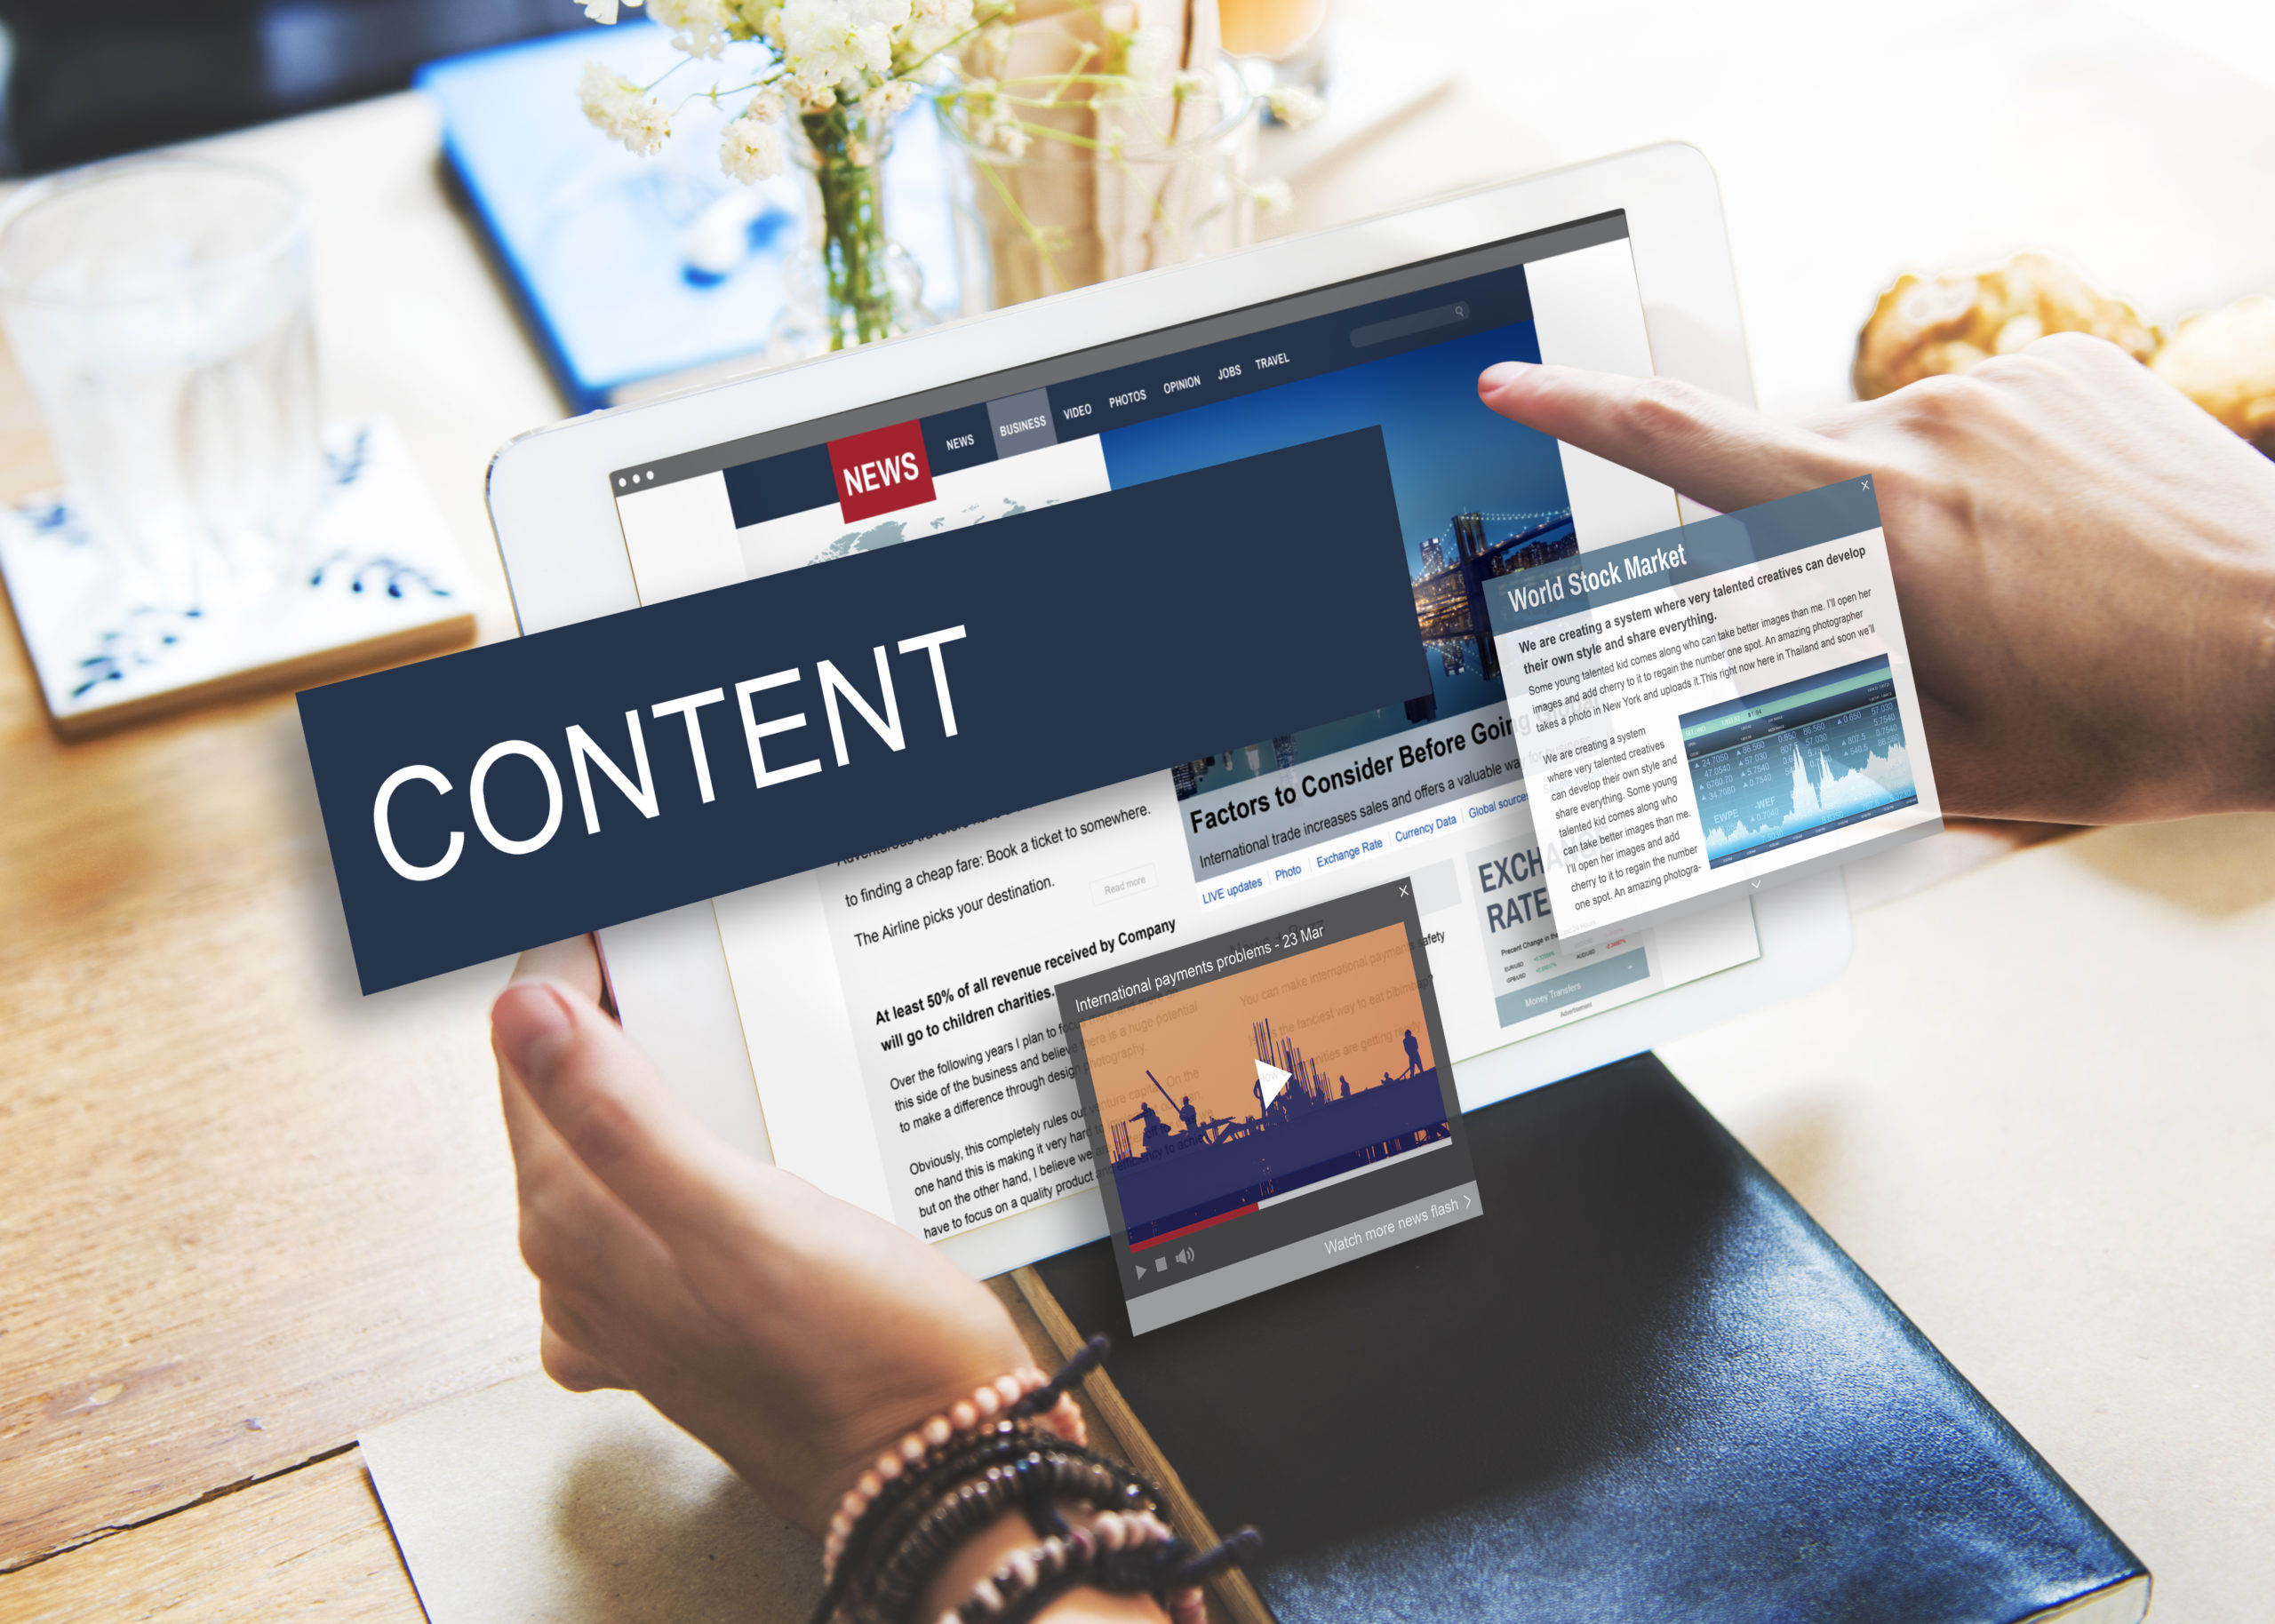 content marketing for lawyers can help you build your client pool